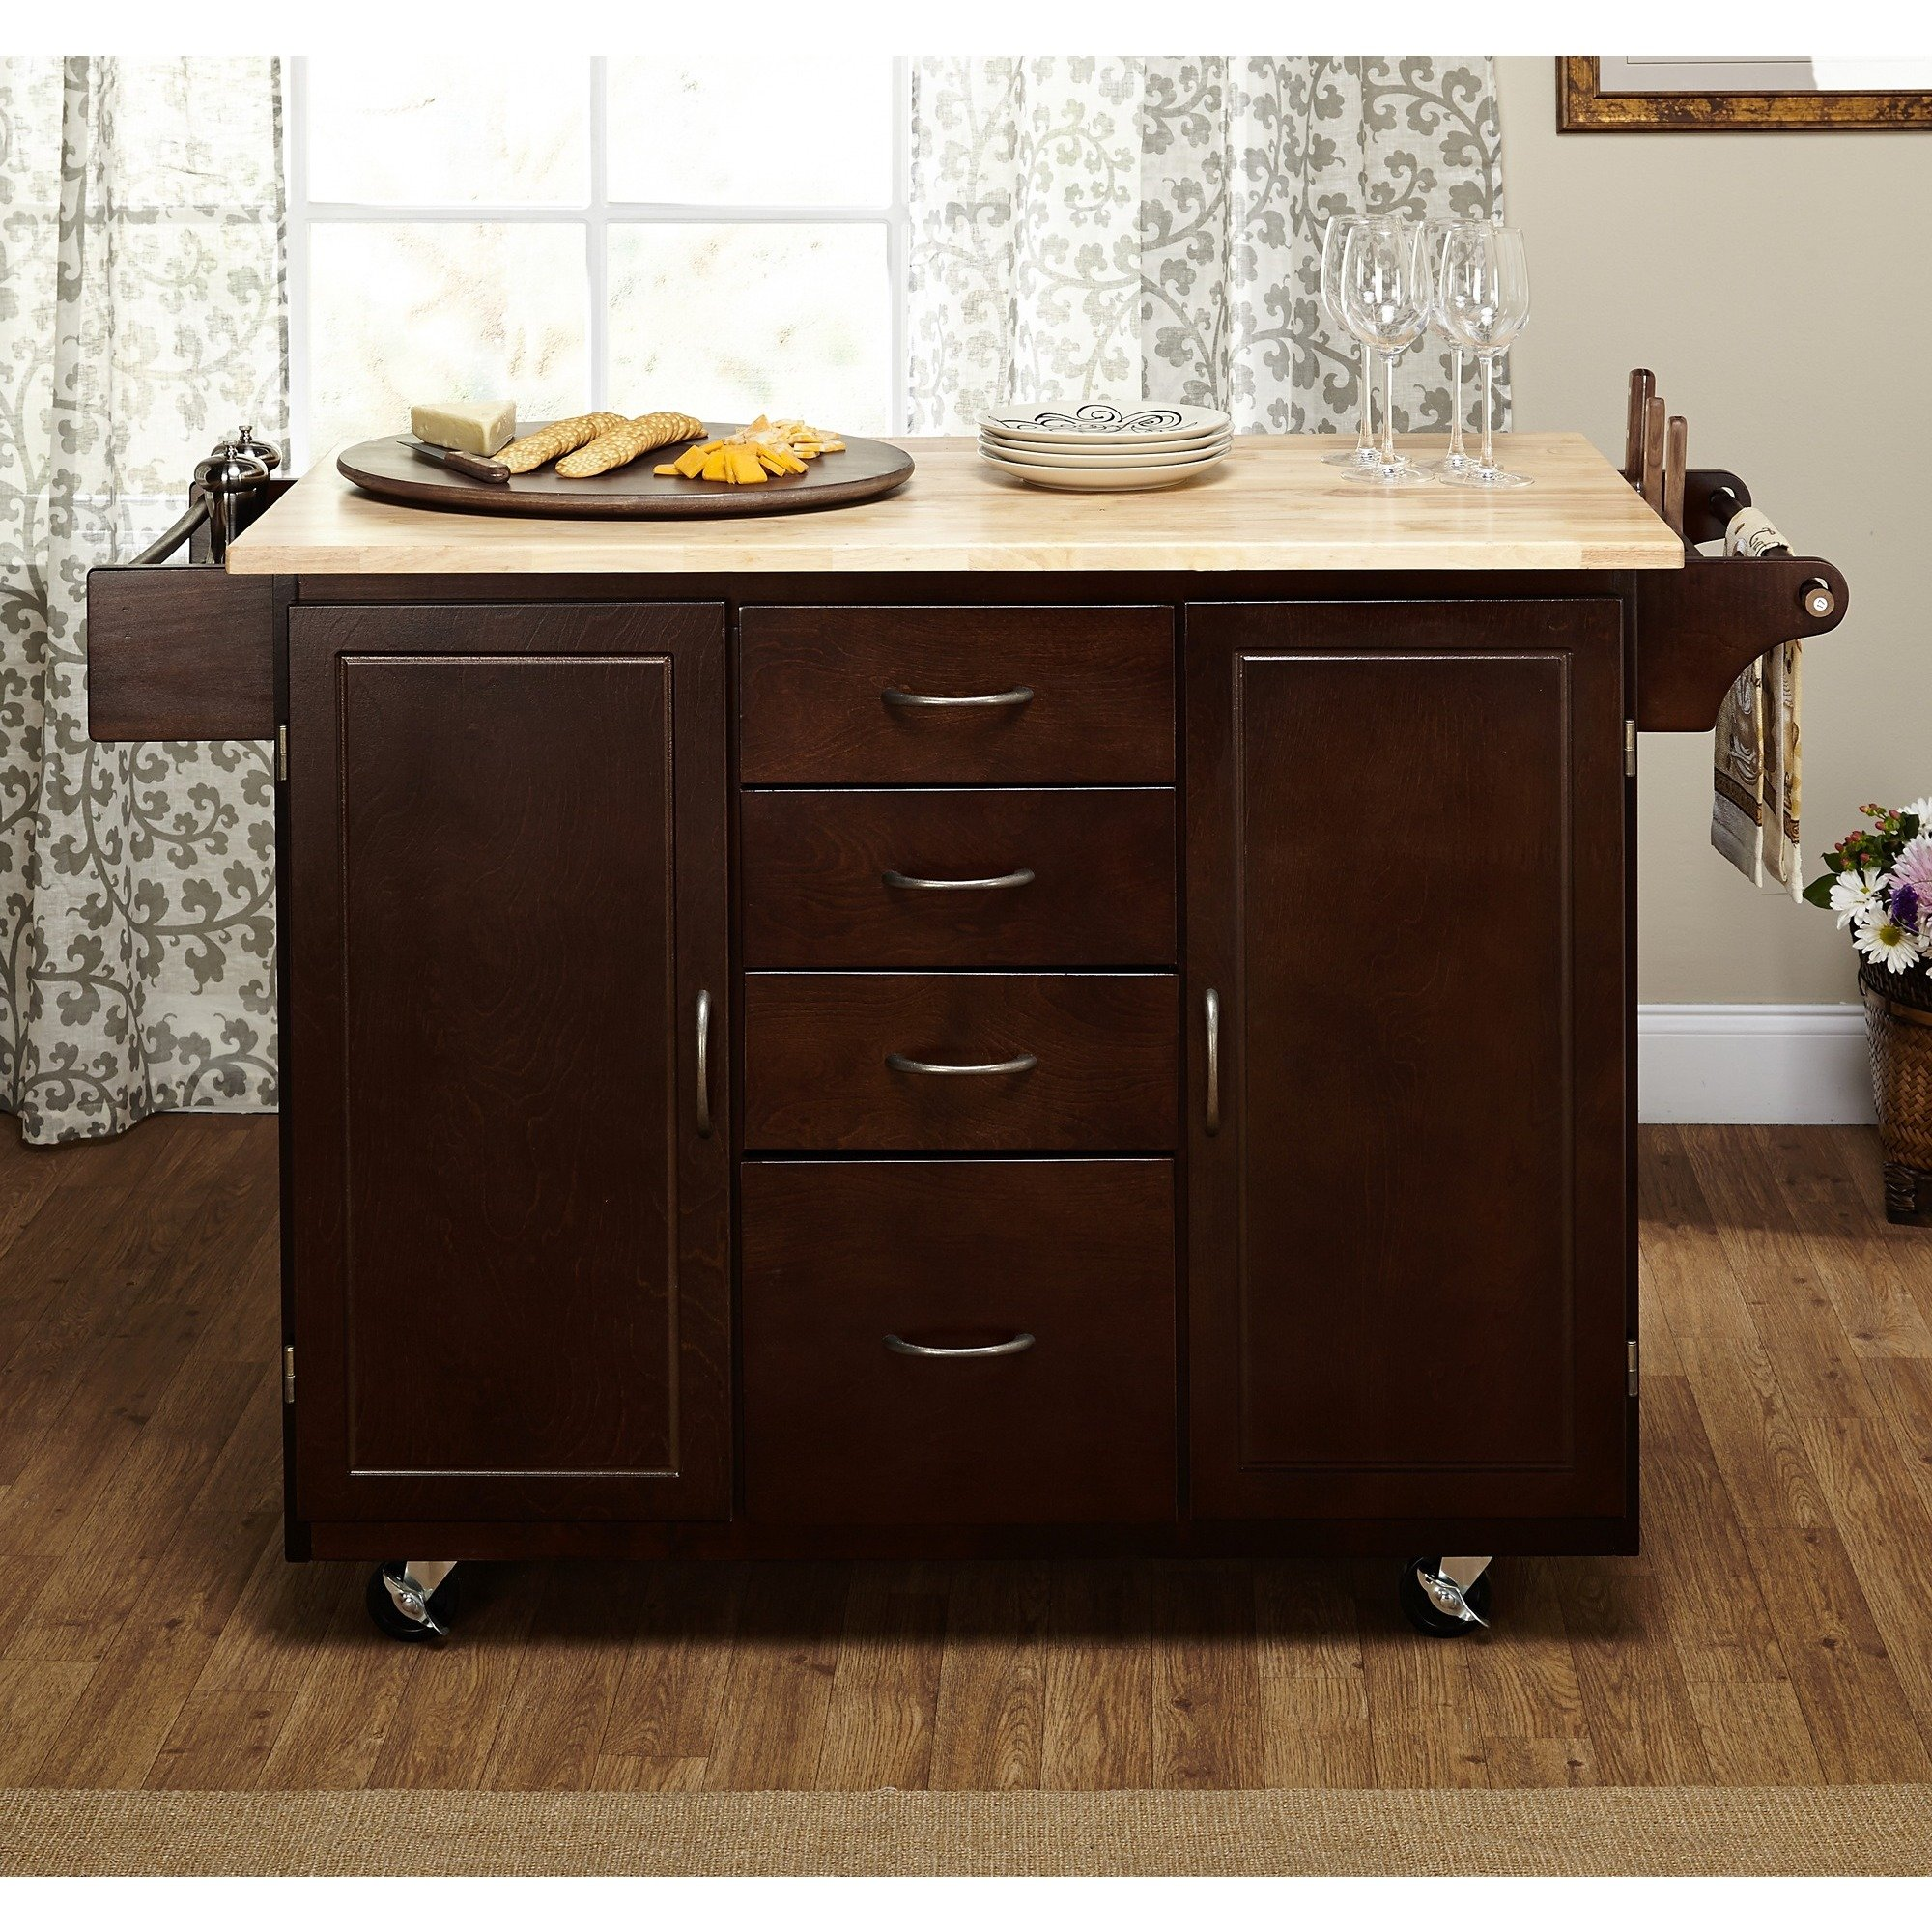 An Attractive Espresso Kitchen Cart That Features a Natural Wood Countertop with Plenty of Storage for Small Kitchens. Mouse Pad Included